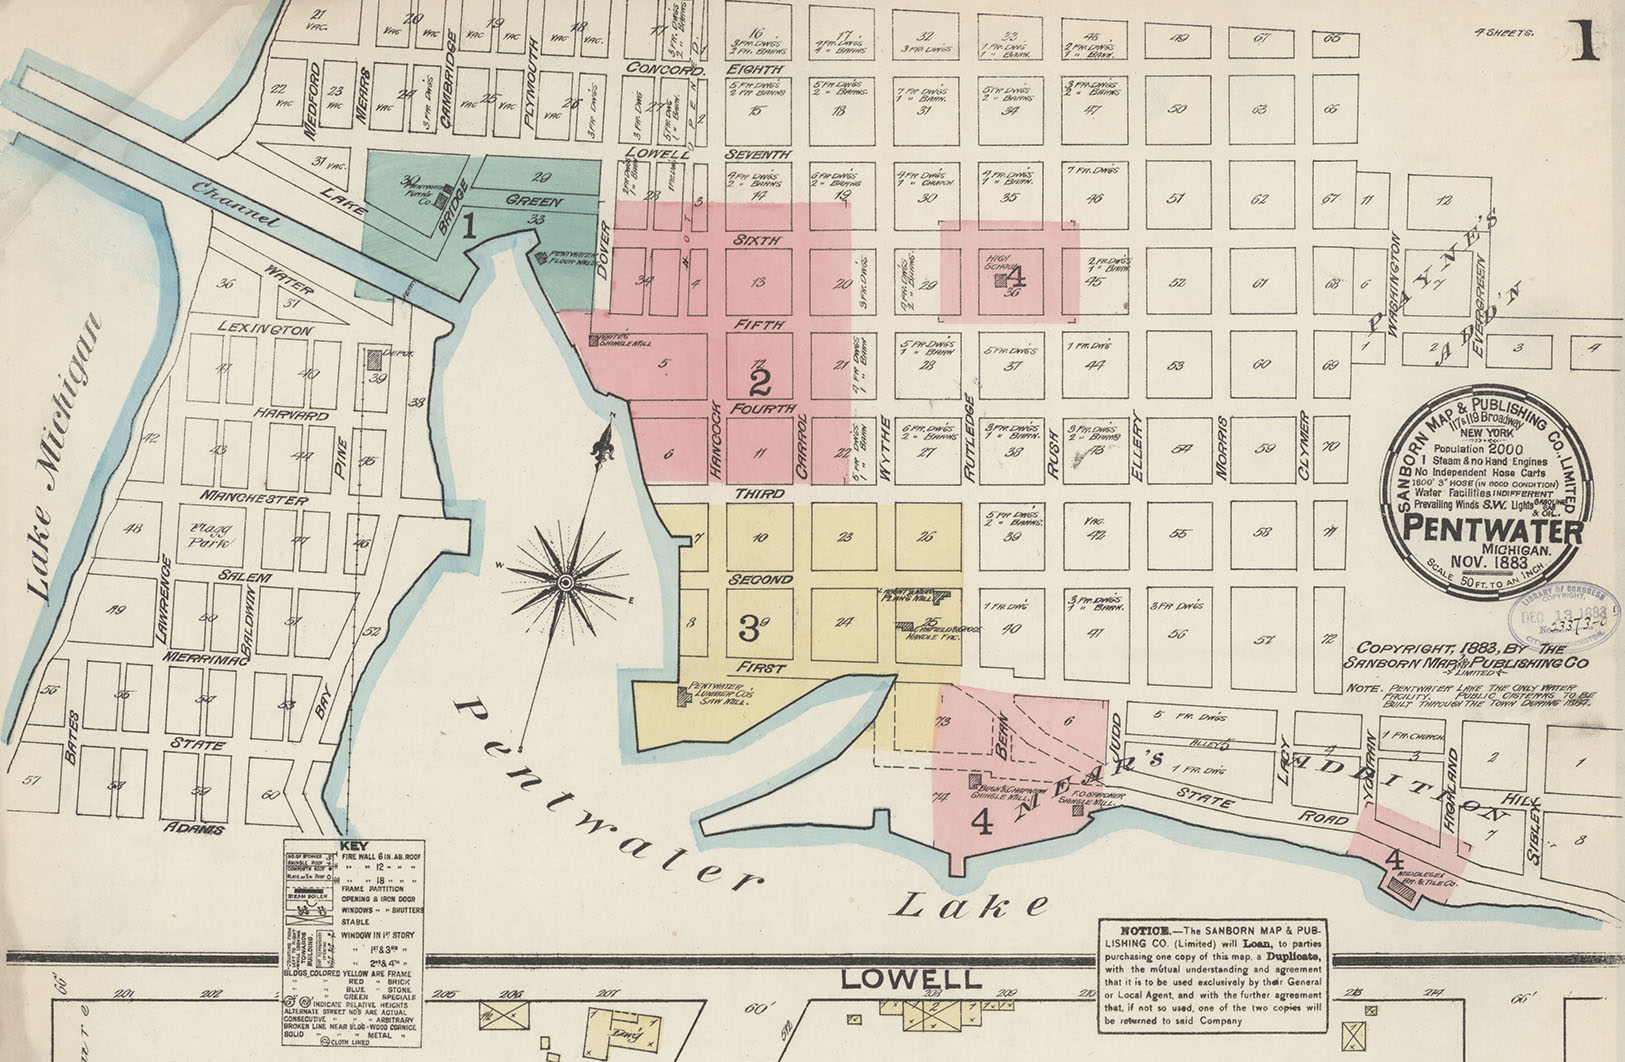 Pentwater, Michigan, in 1883 - happy #SanbornSaturday everyone!  You can see all of Pentwater here -  https://t.co/9YbS59ZNpD https://t.co/rGdVJaVjDv